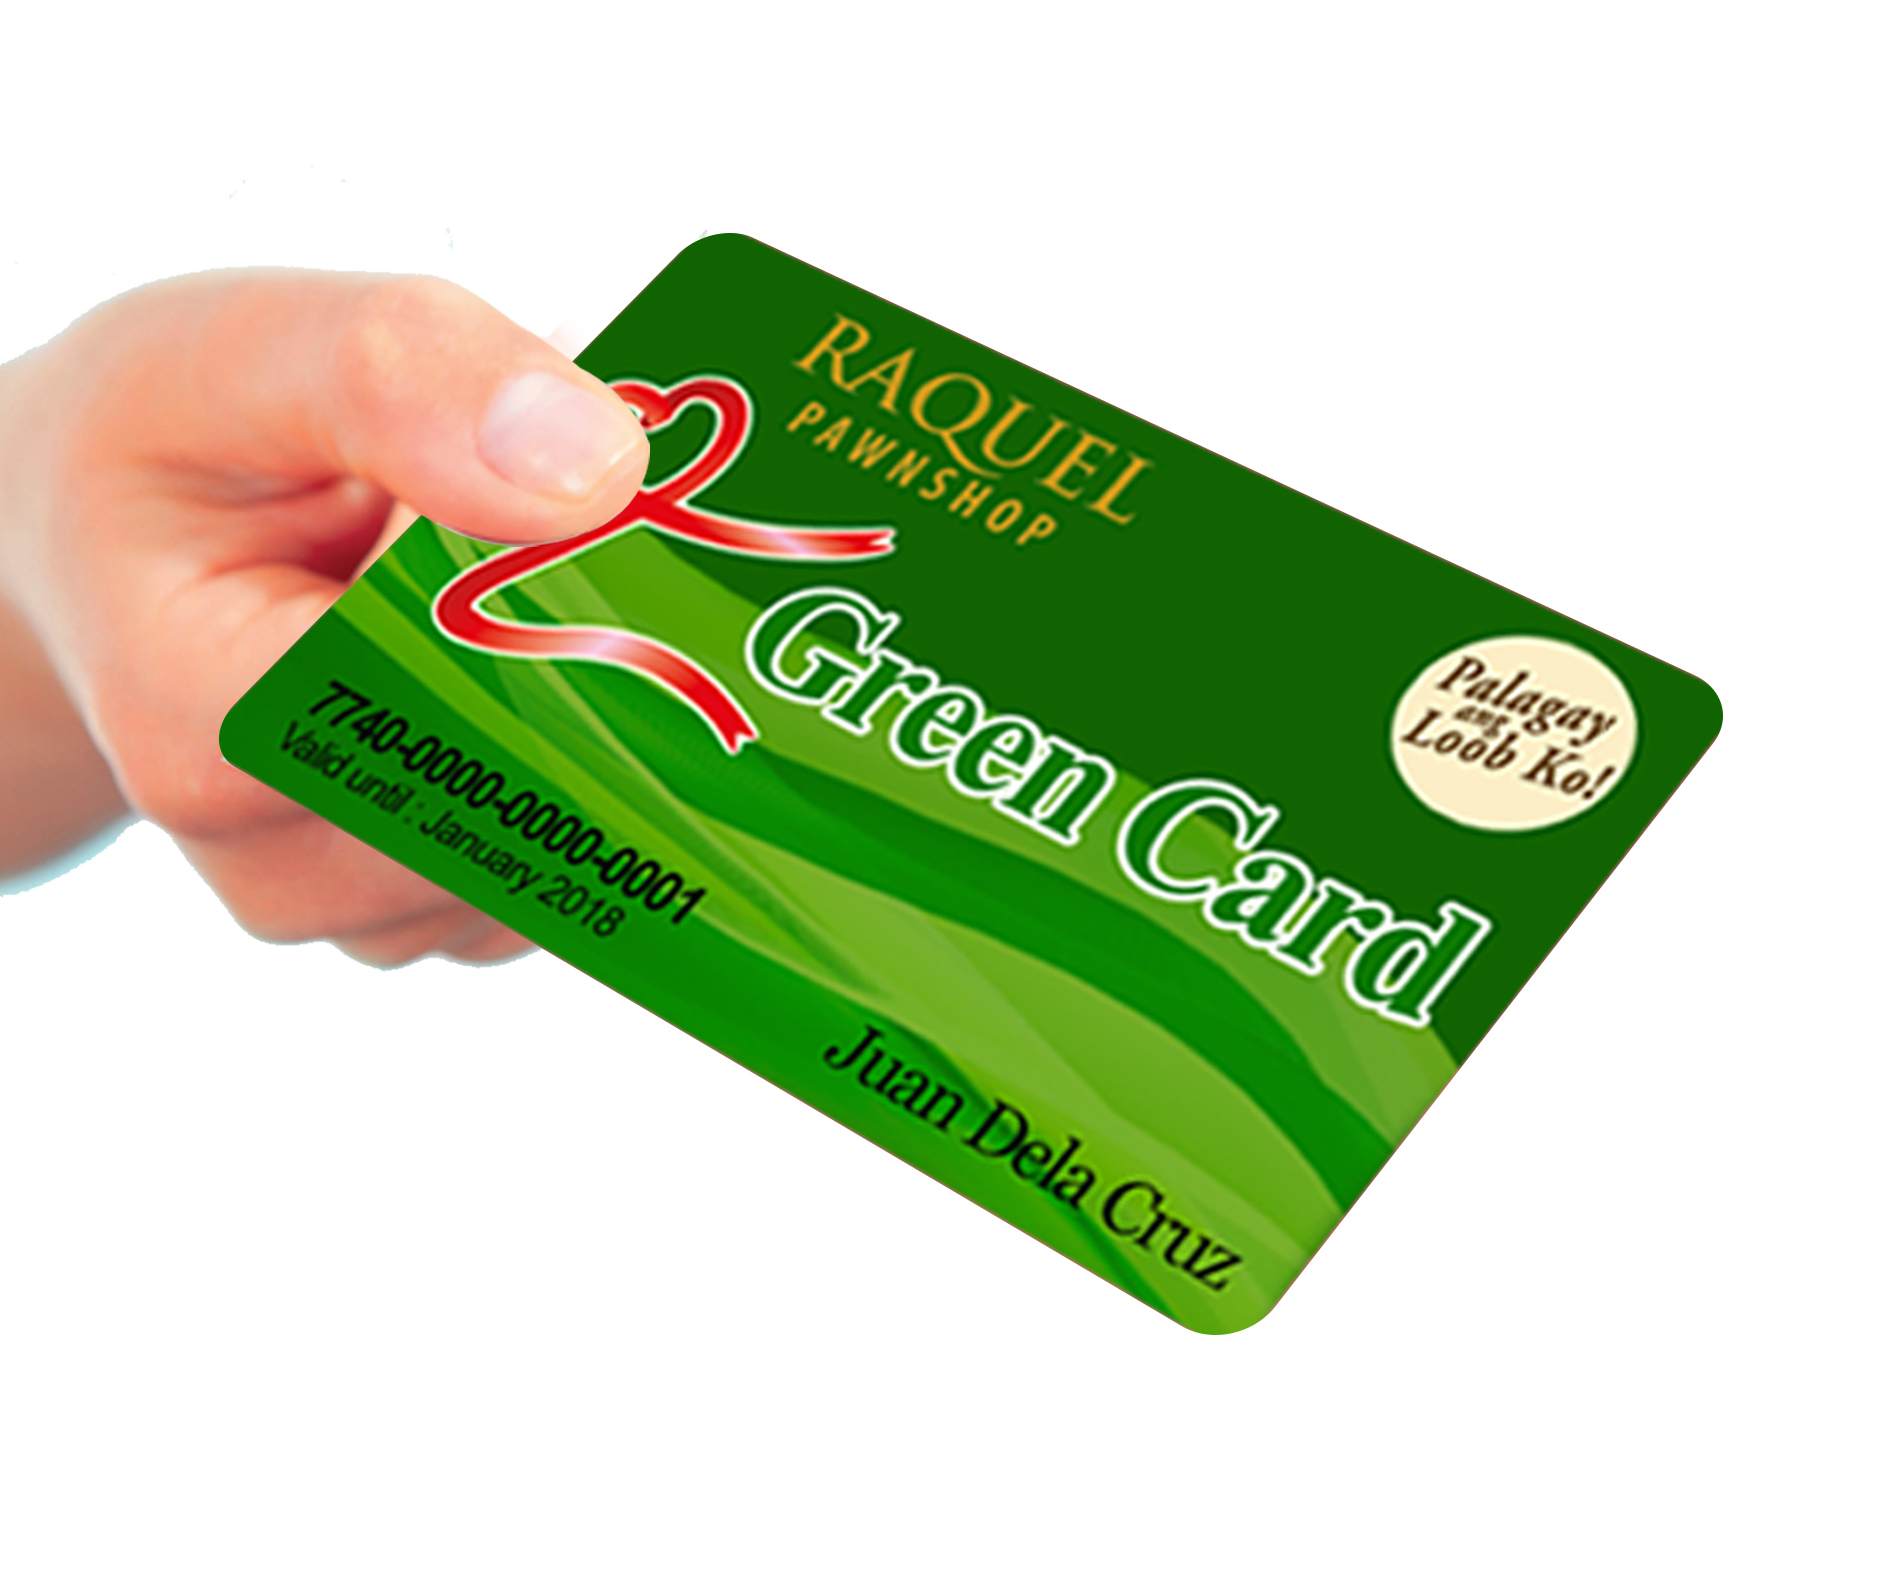 Raquel Pawnshop to Unveil Green Card in 2017